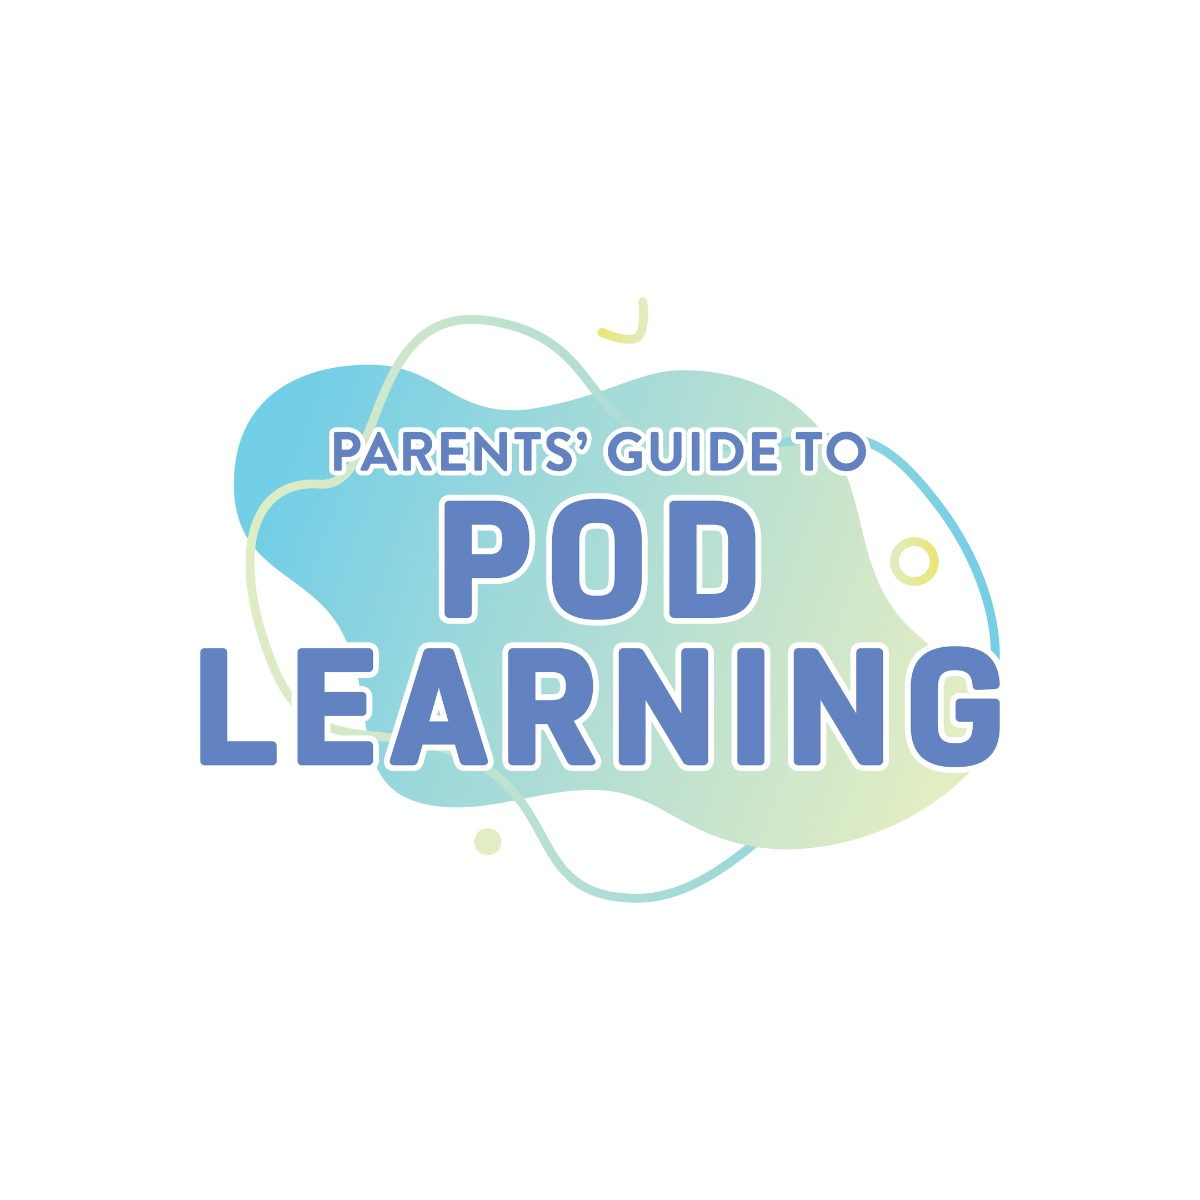 pod learning icon